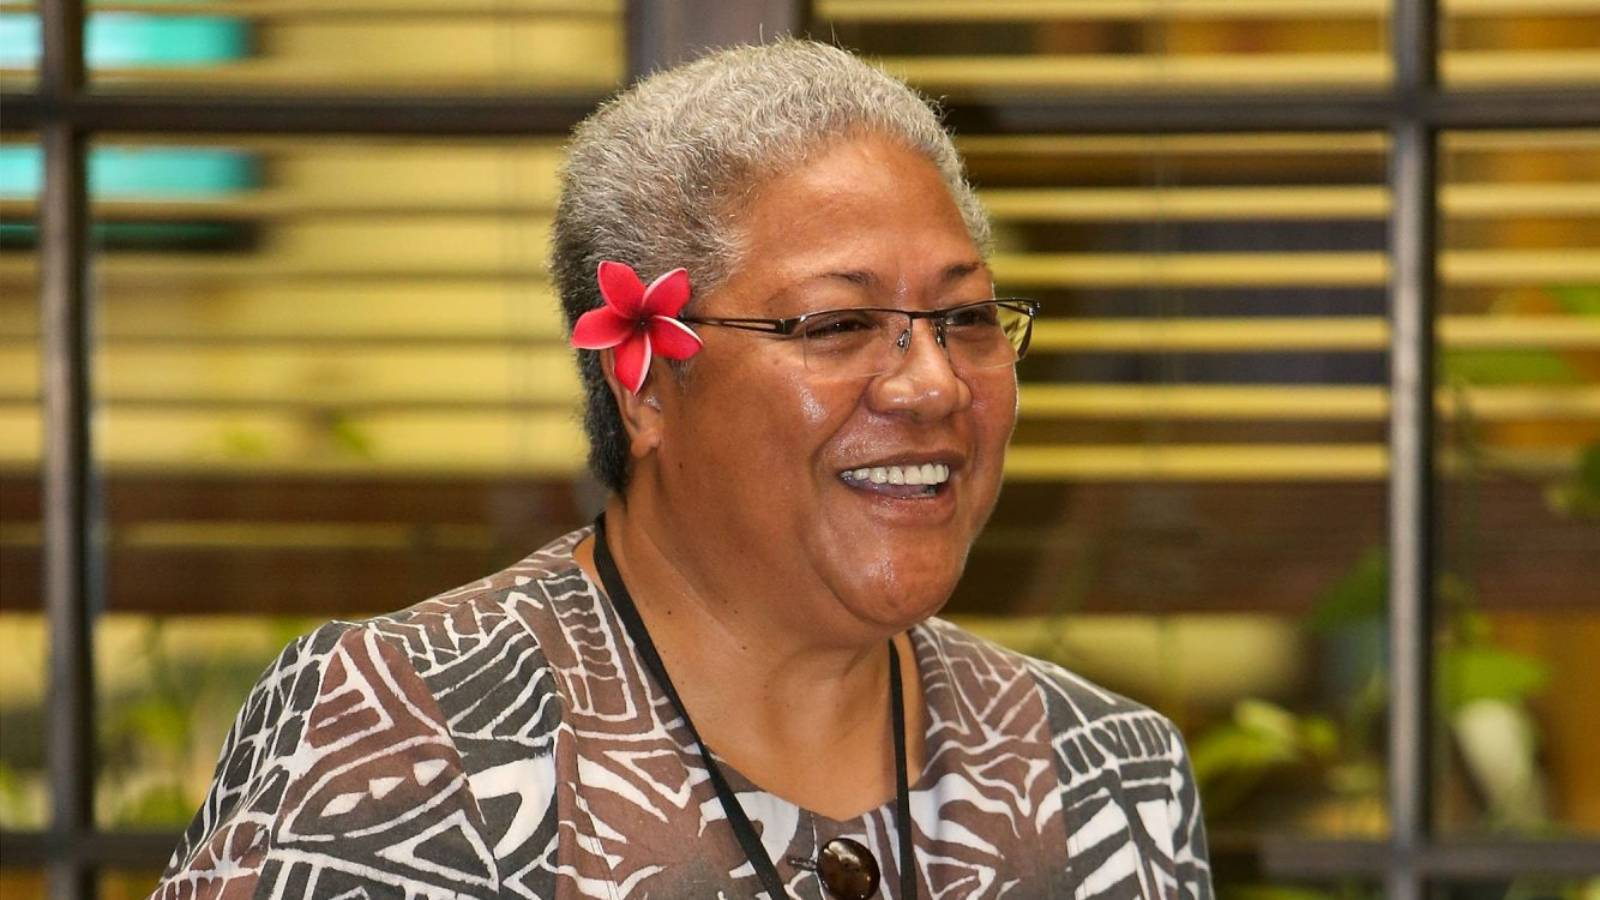 Samoa election: FAST party leader, who grew up in Wellington, is hopeful as deadlock continues